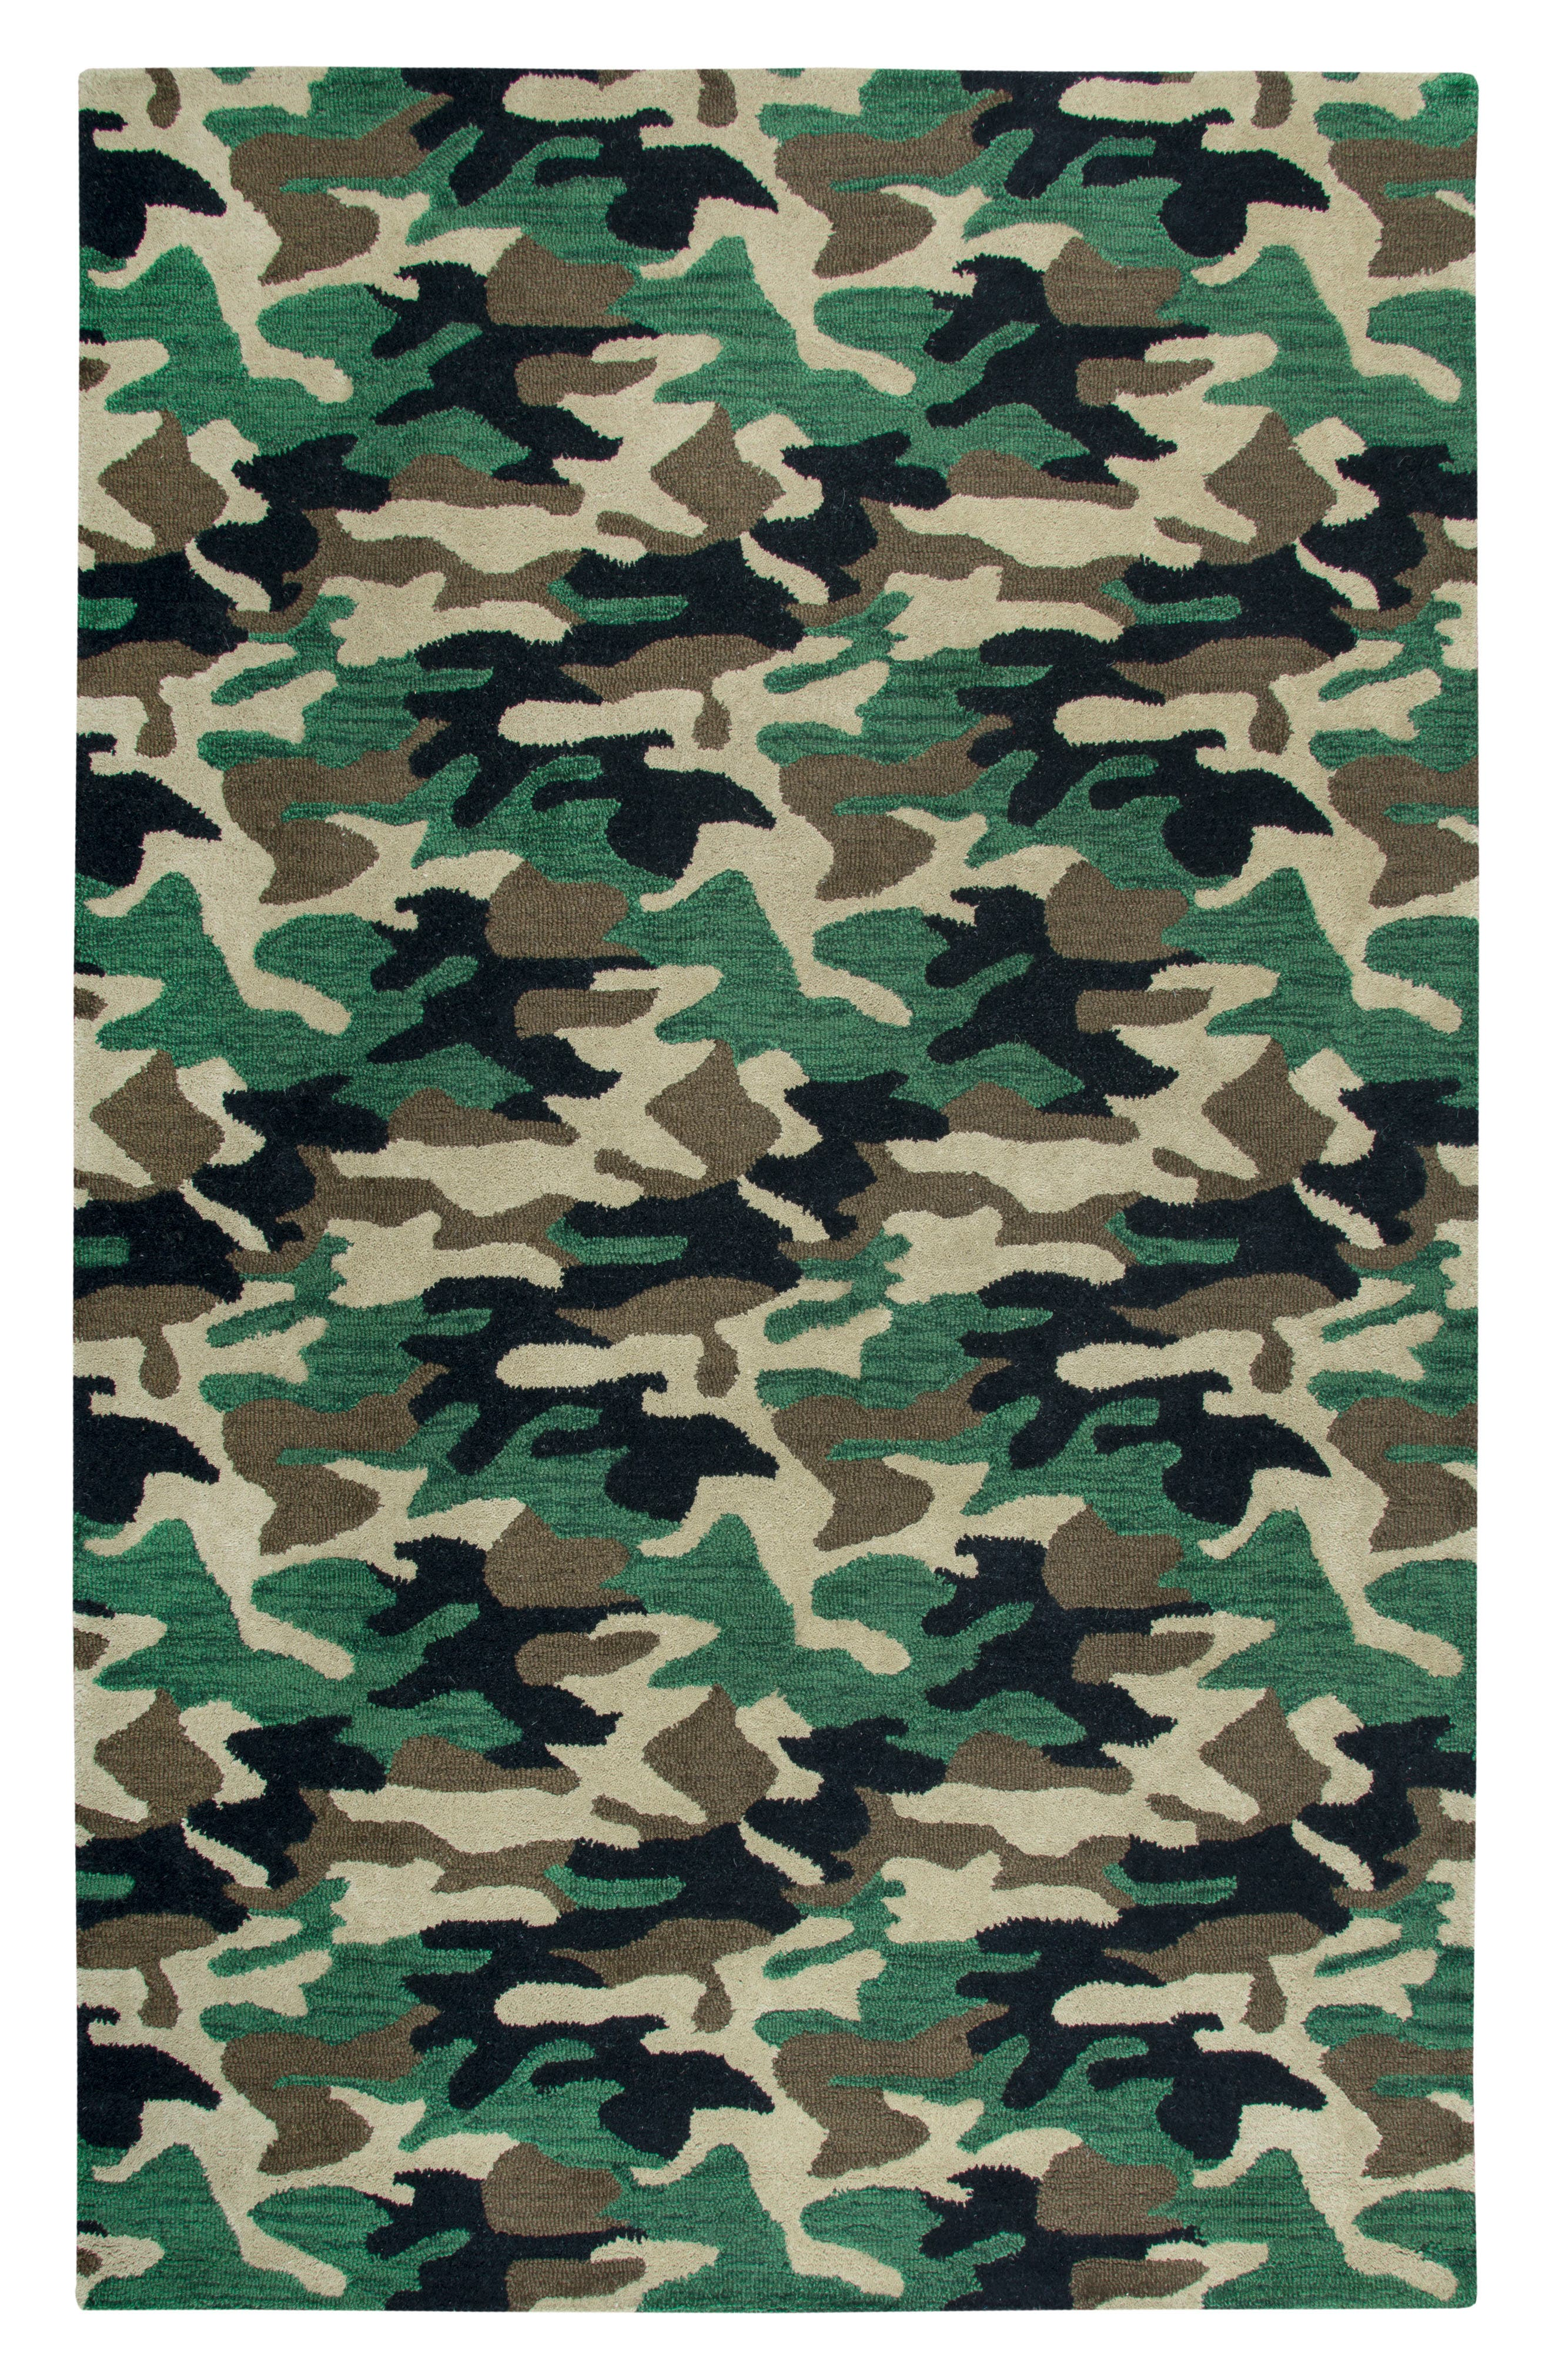 Main Image - Rizzy Home Play Day Camouflage Rug